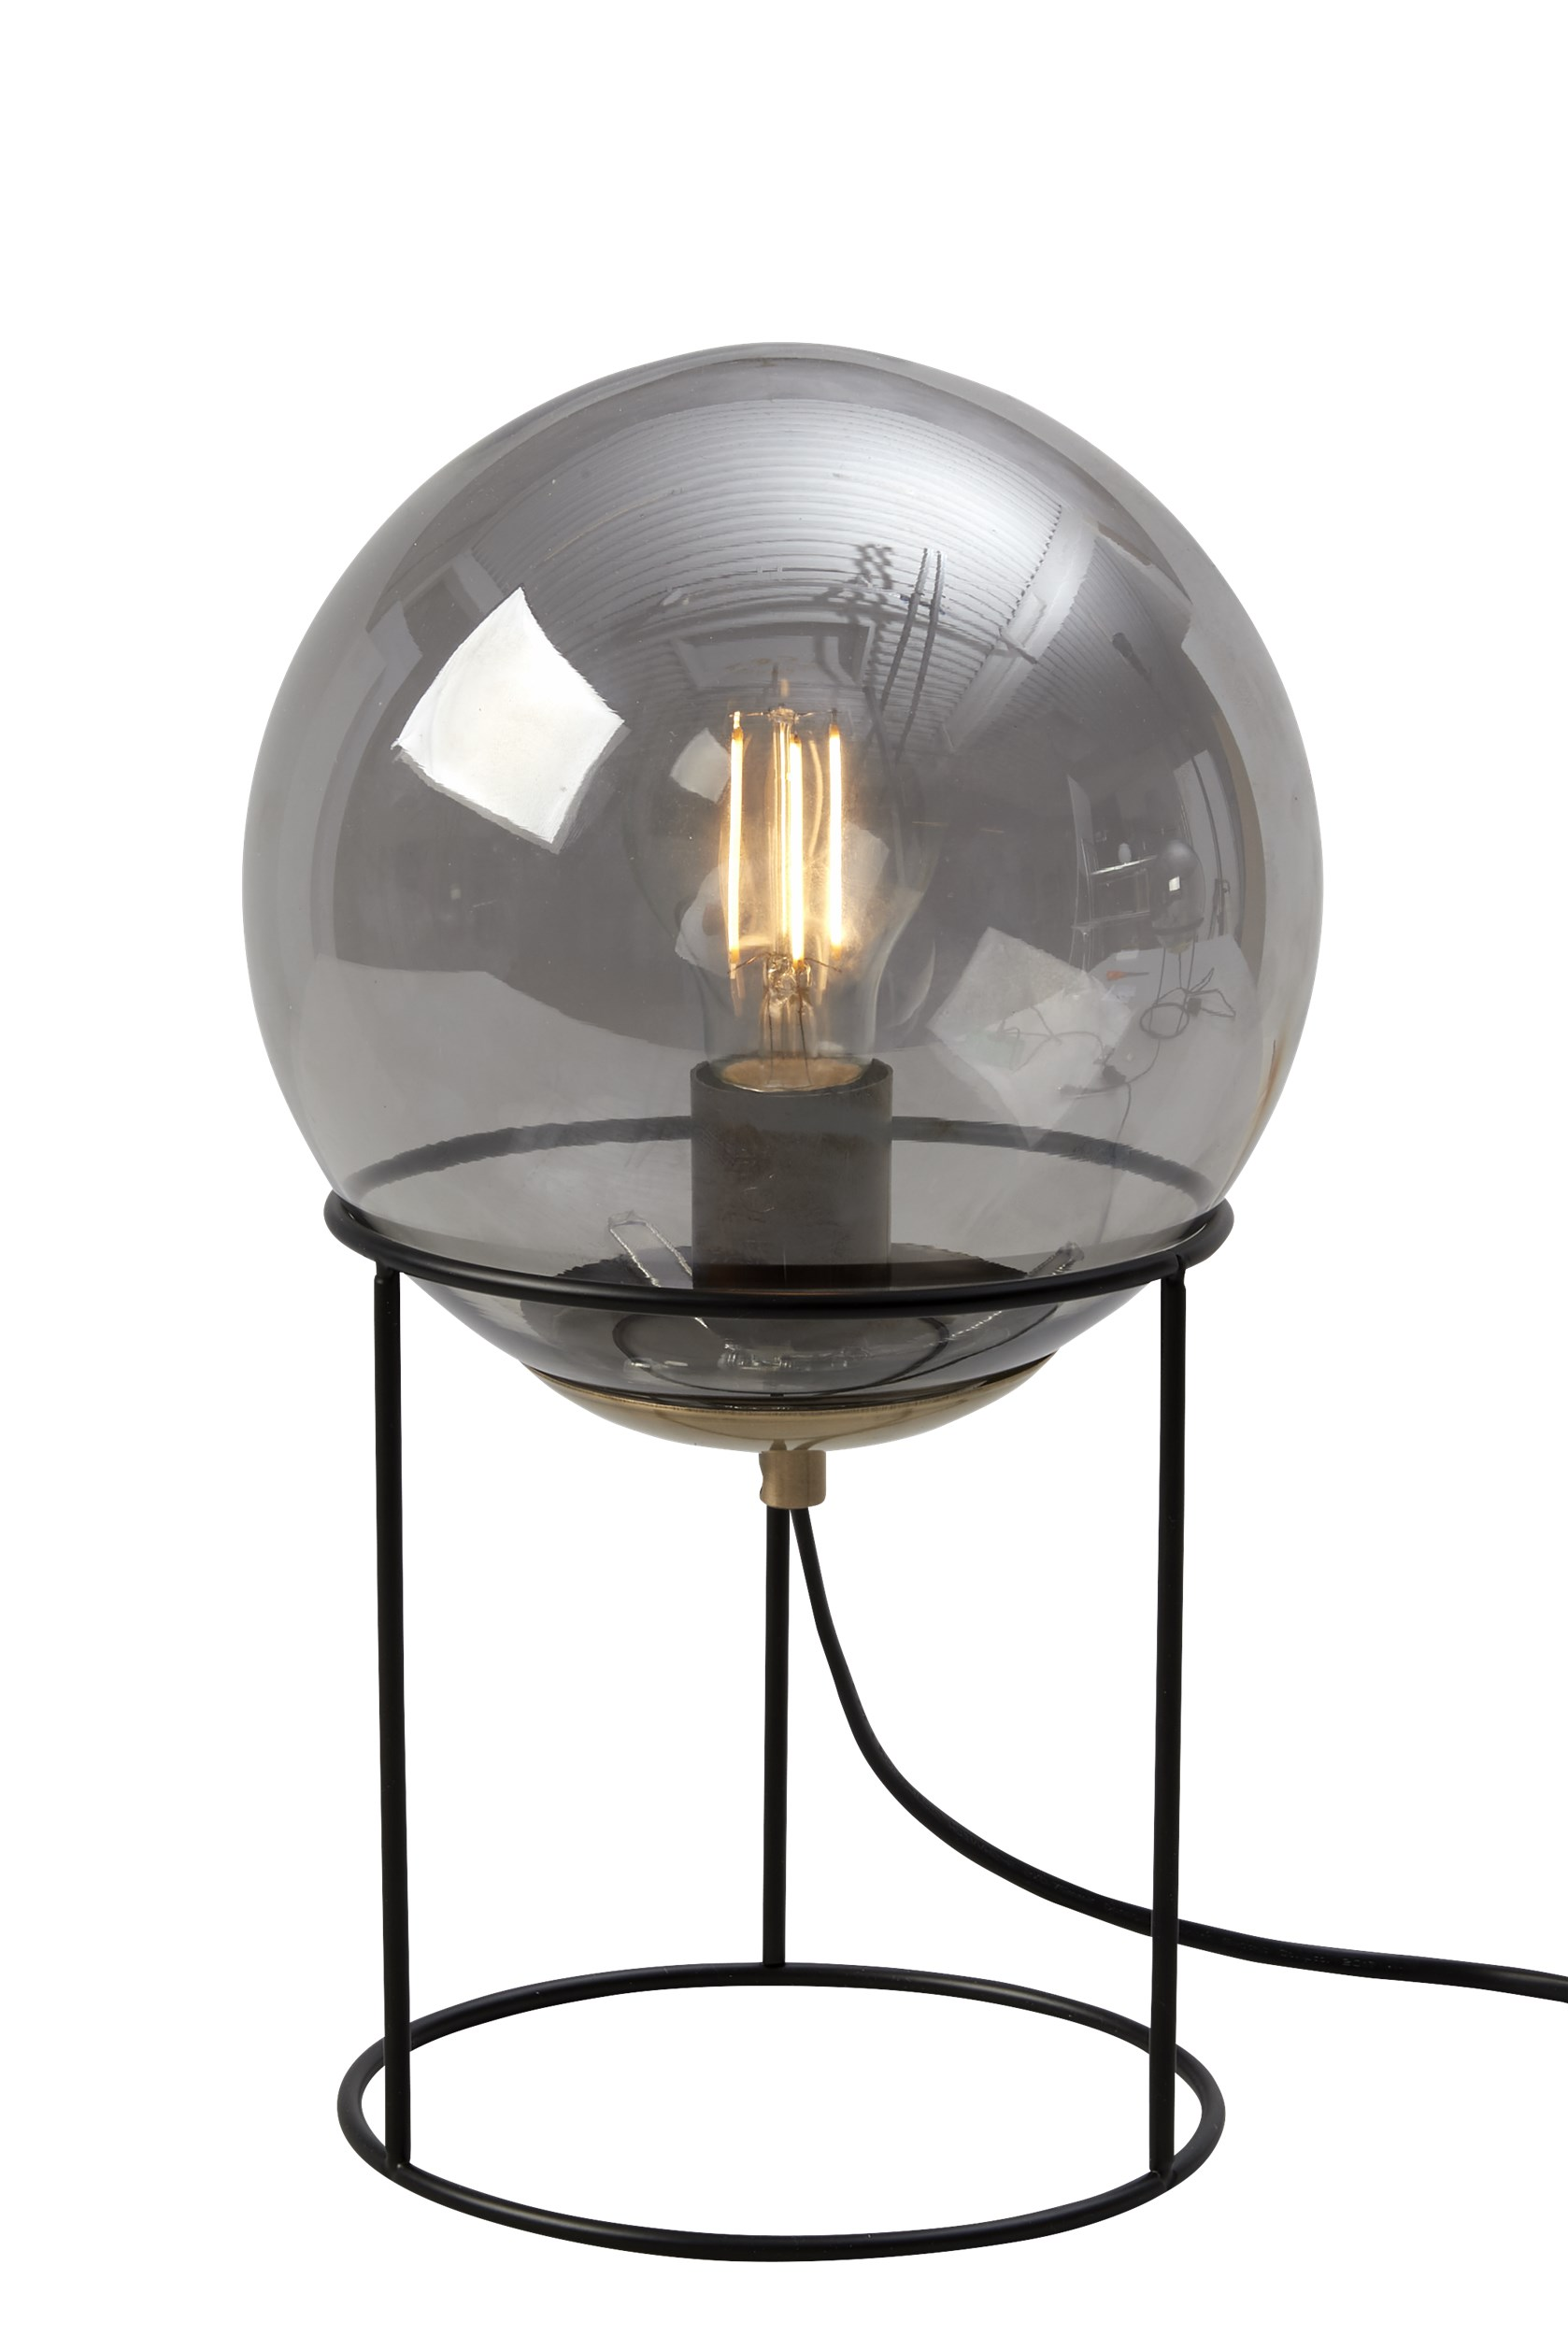 Moon Bordlampe 34 x 20 cm - Sort metalstel, smoke glasskærm og sort ledning